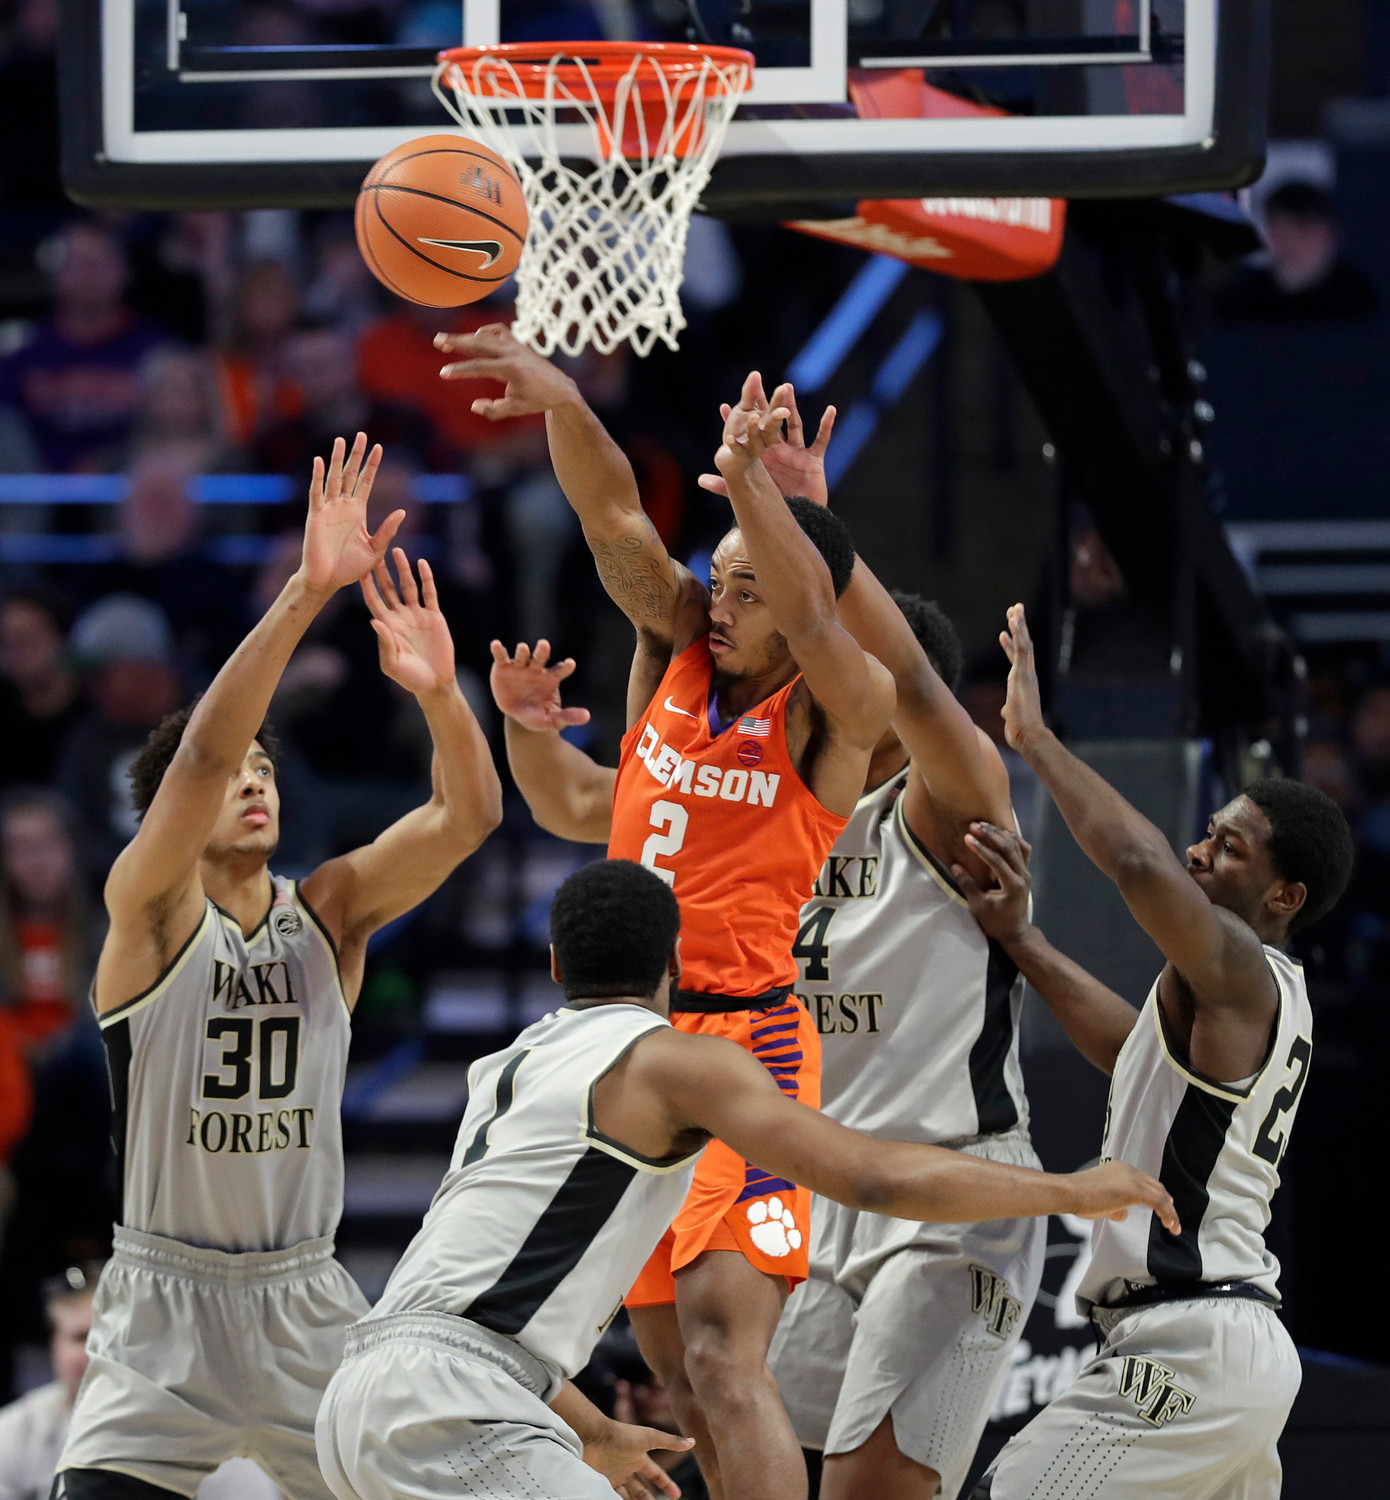 Clemson's Marcquise Reed (2) passes the ball over Wake Forest players during the first half of the Tigers' 75-67 victory over the Demon Deacons on Saturday in Winston-Salem, North Carolina.